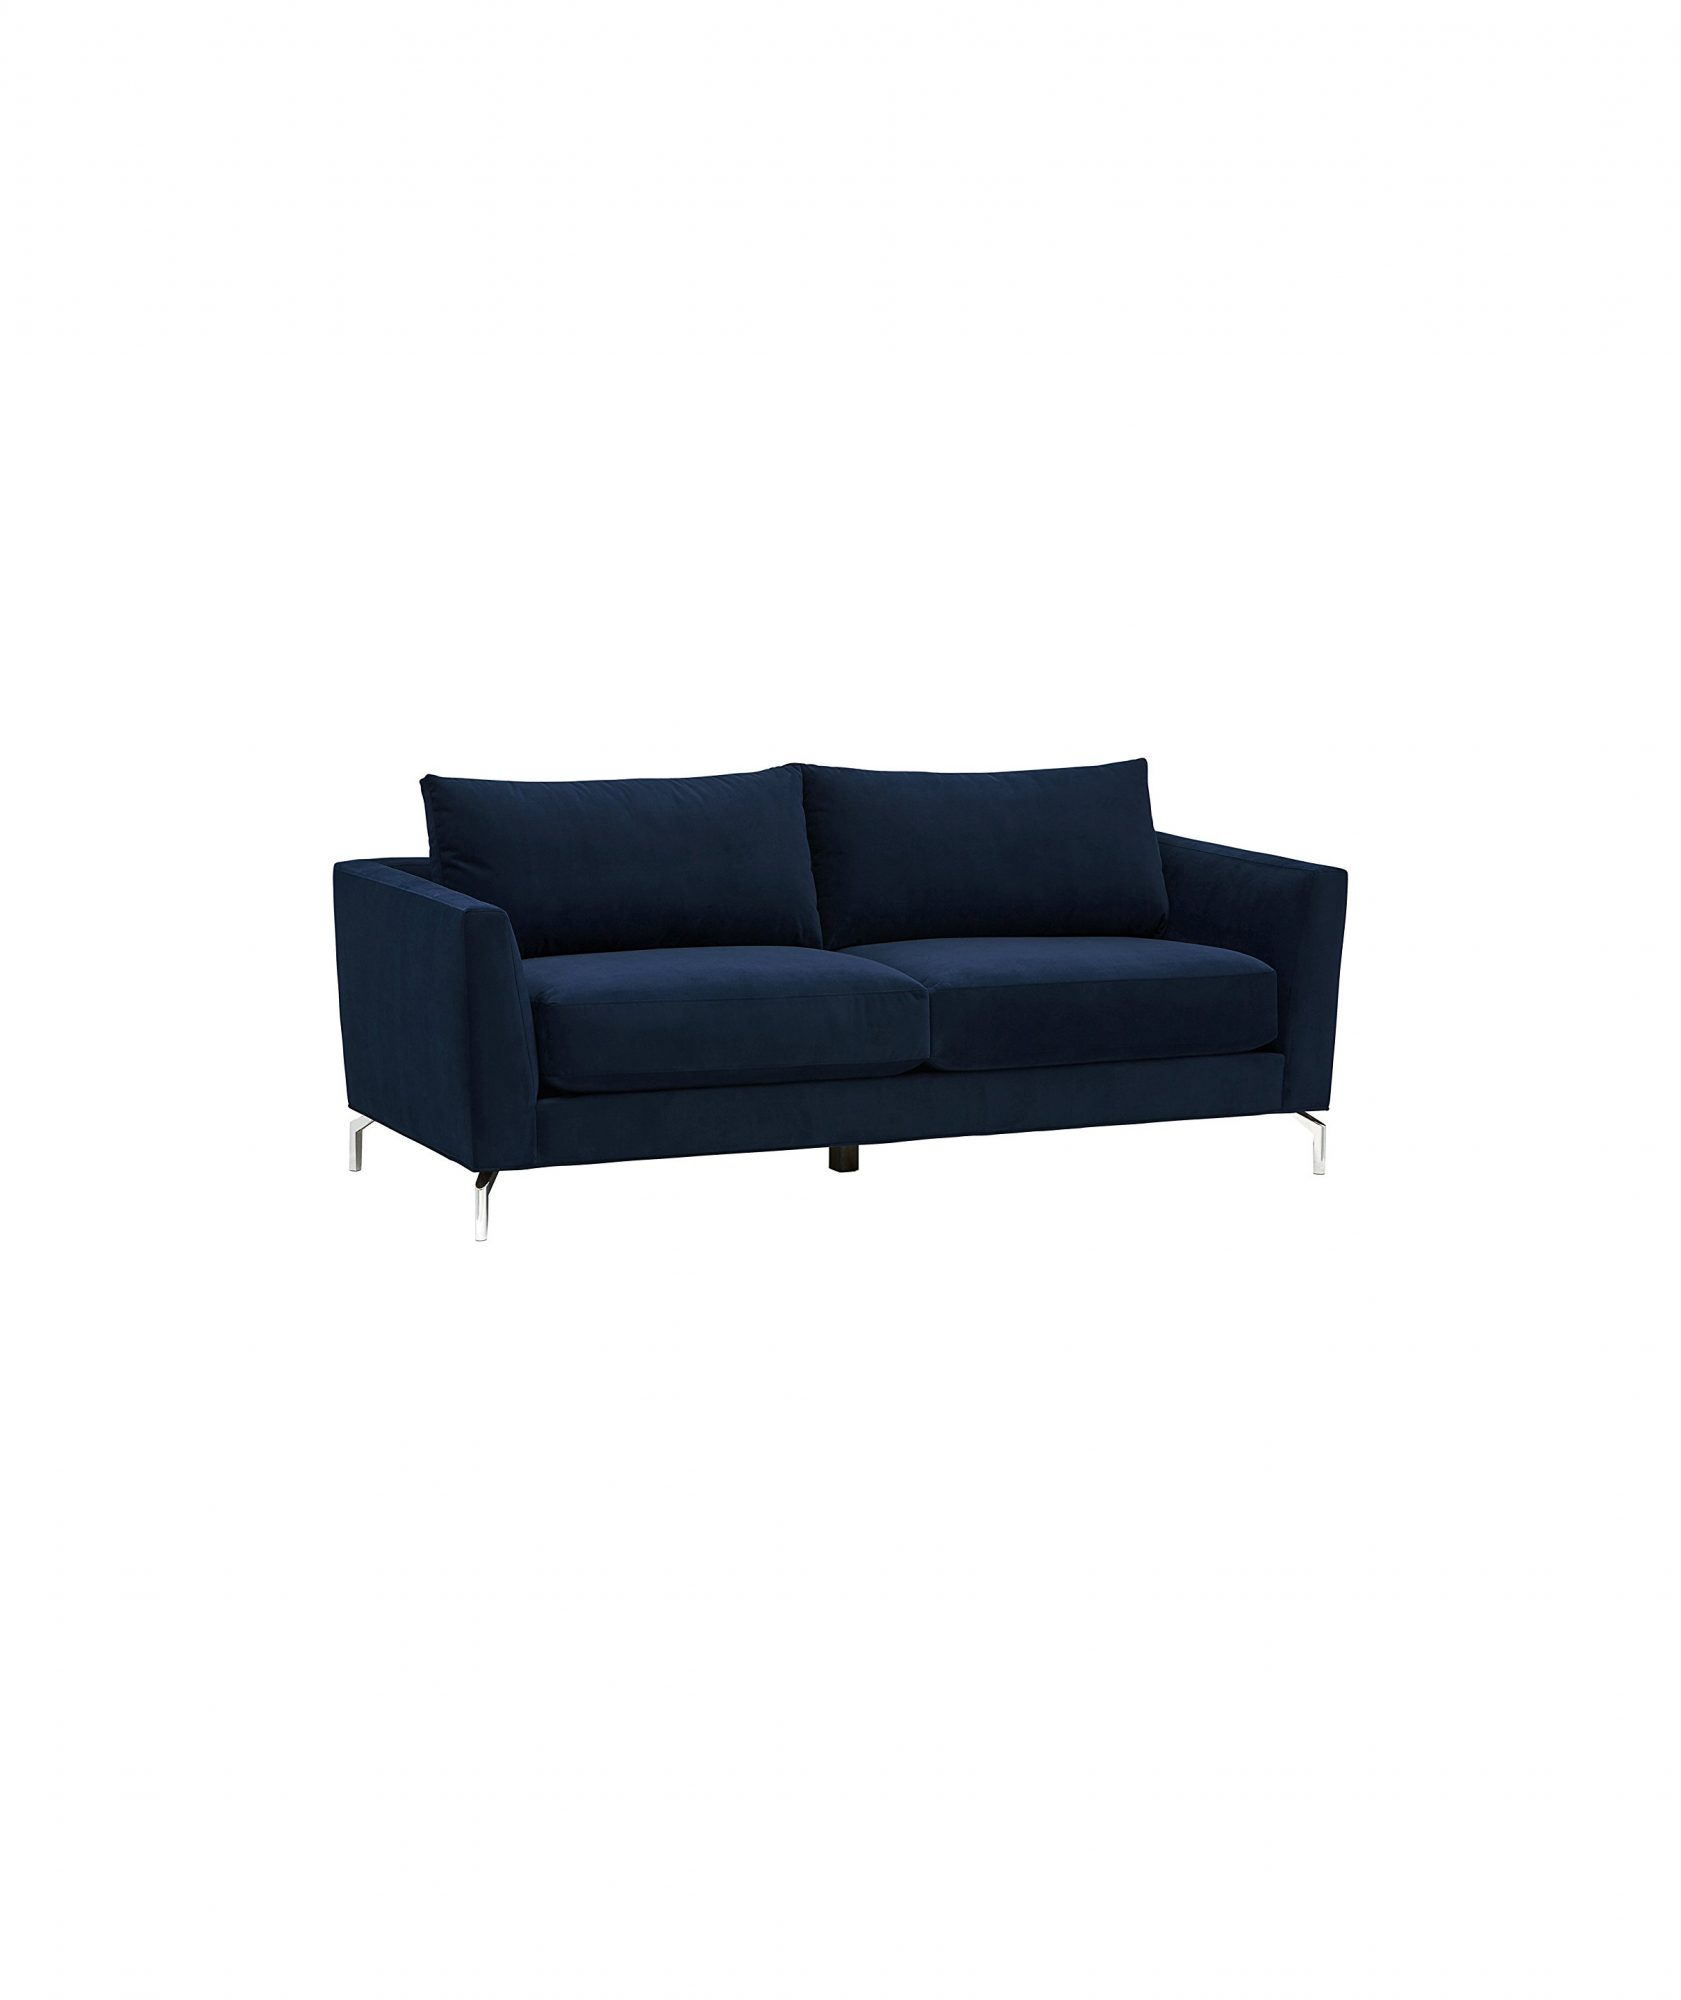 Rivet Sofa Amazon Prime Day